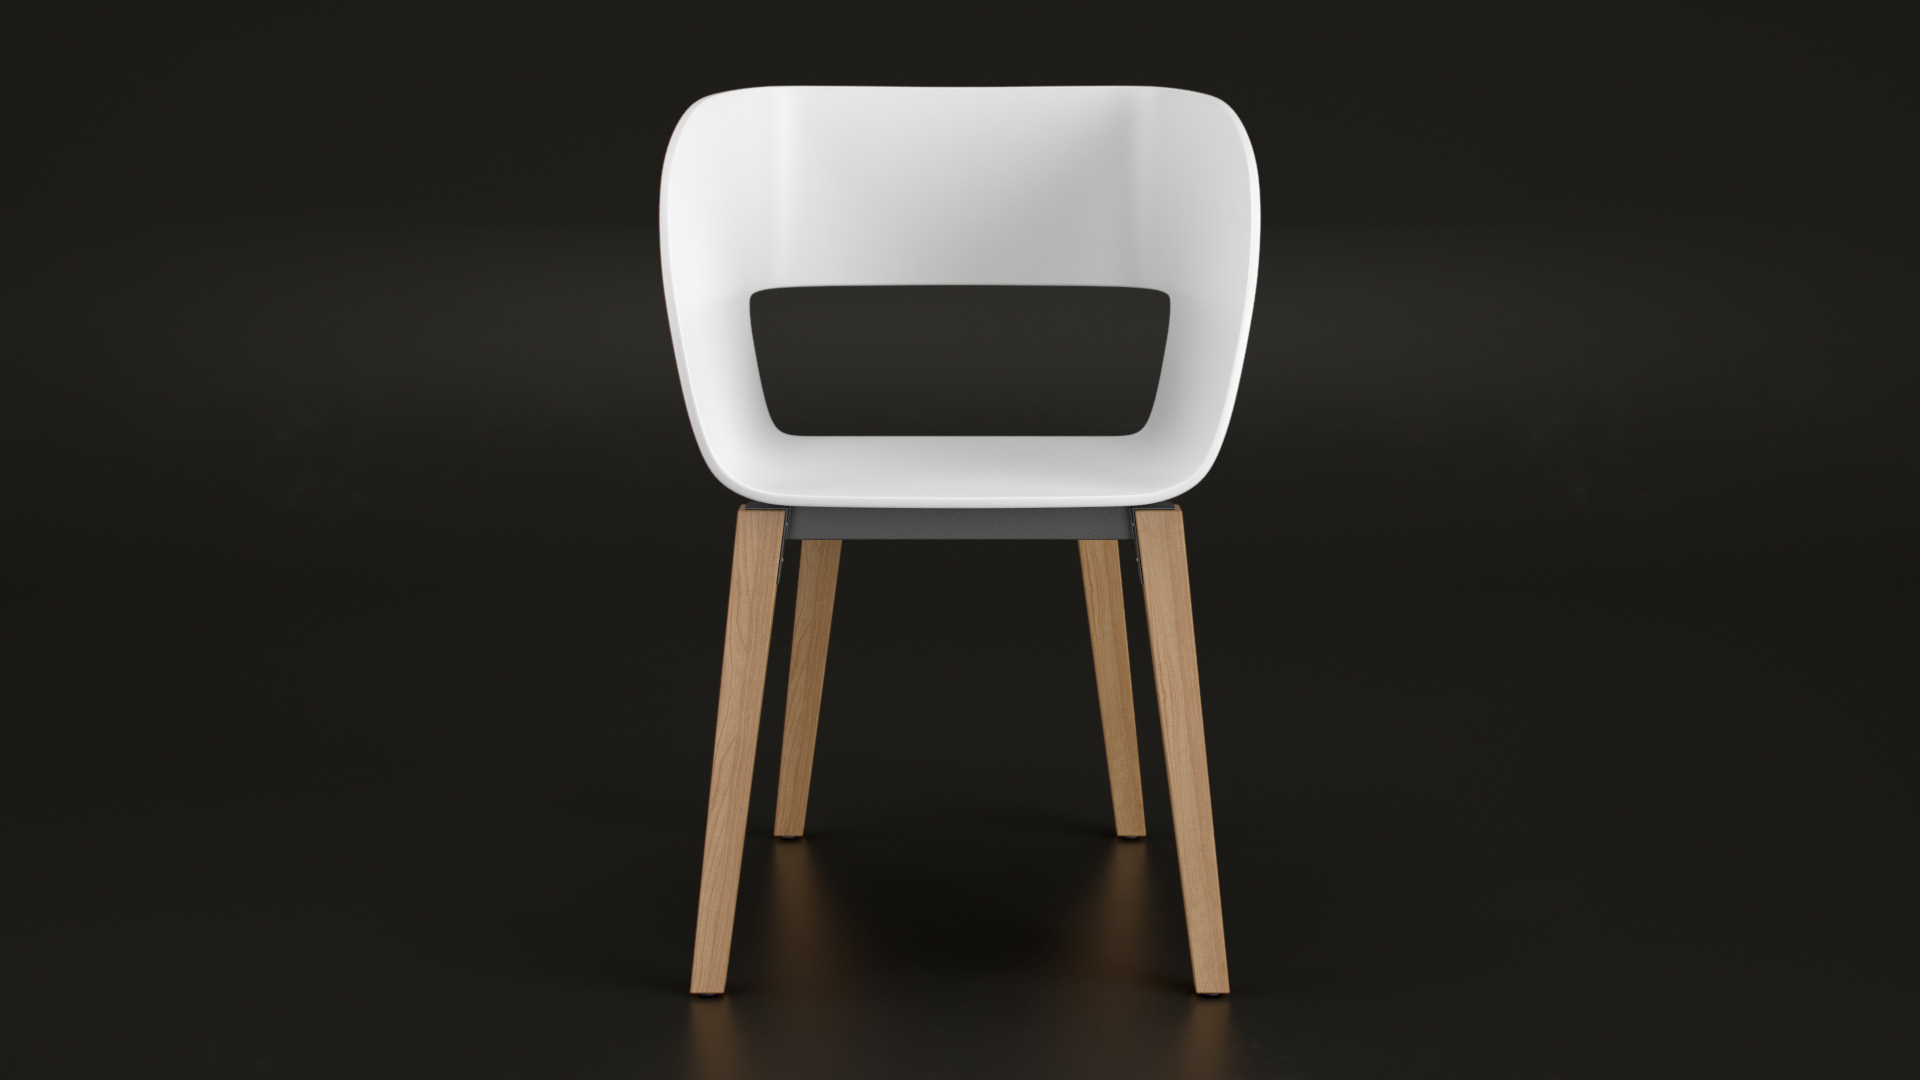 Tribu_Vintage_Chair_TeakLegs_BlackSet_01_V1.01_0001